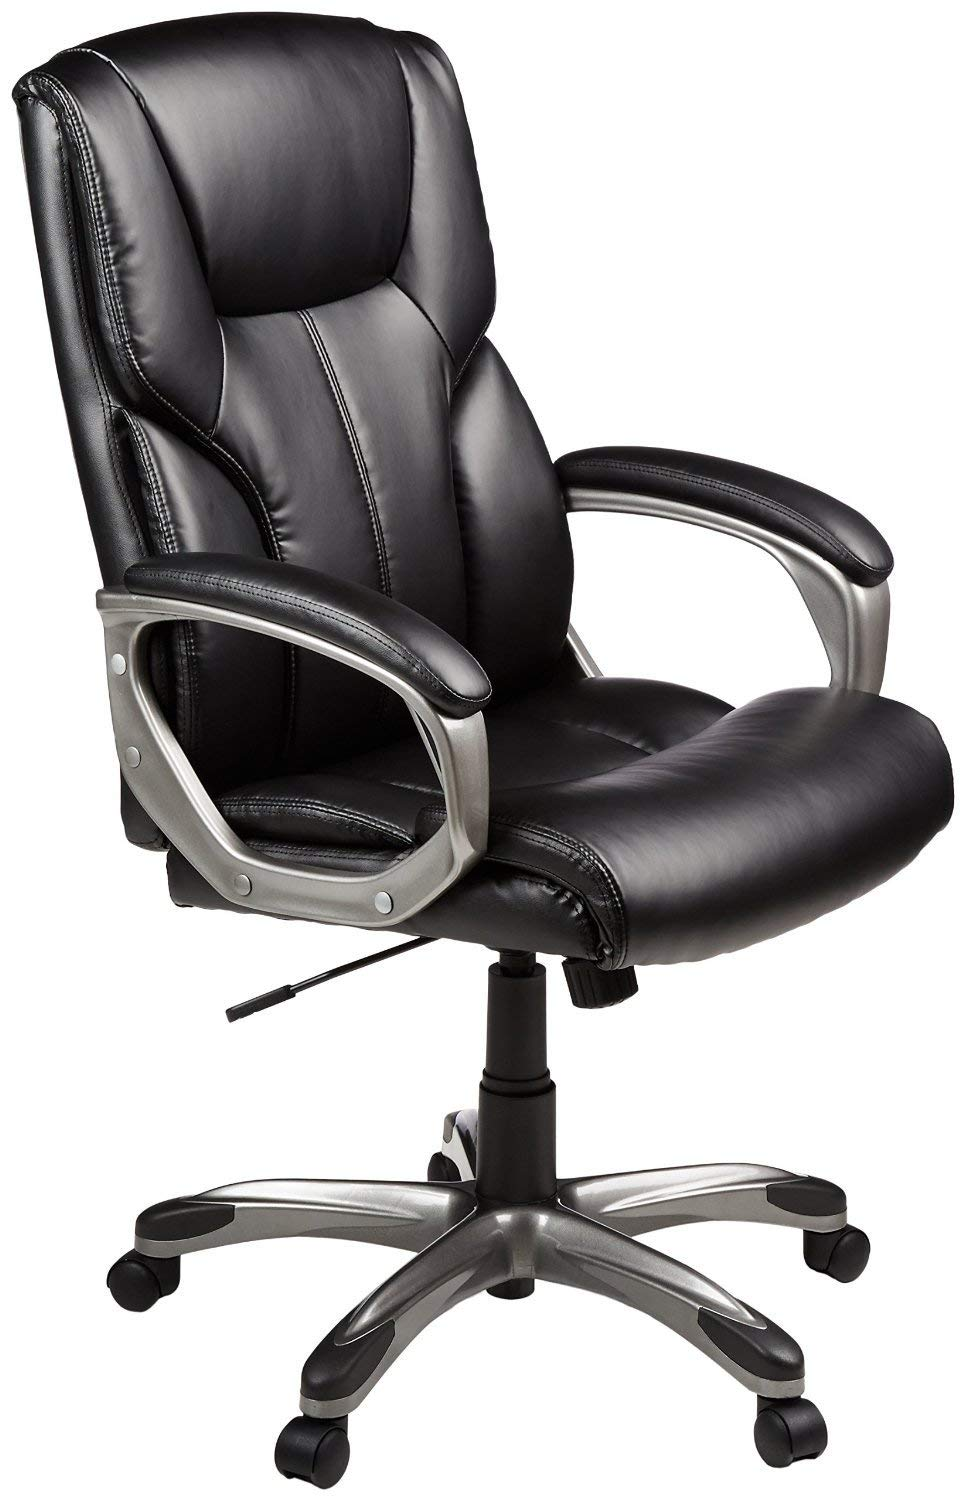 Top 10 Best Office Chairs